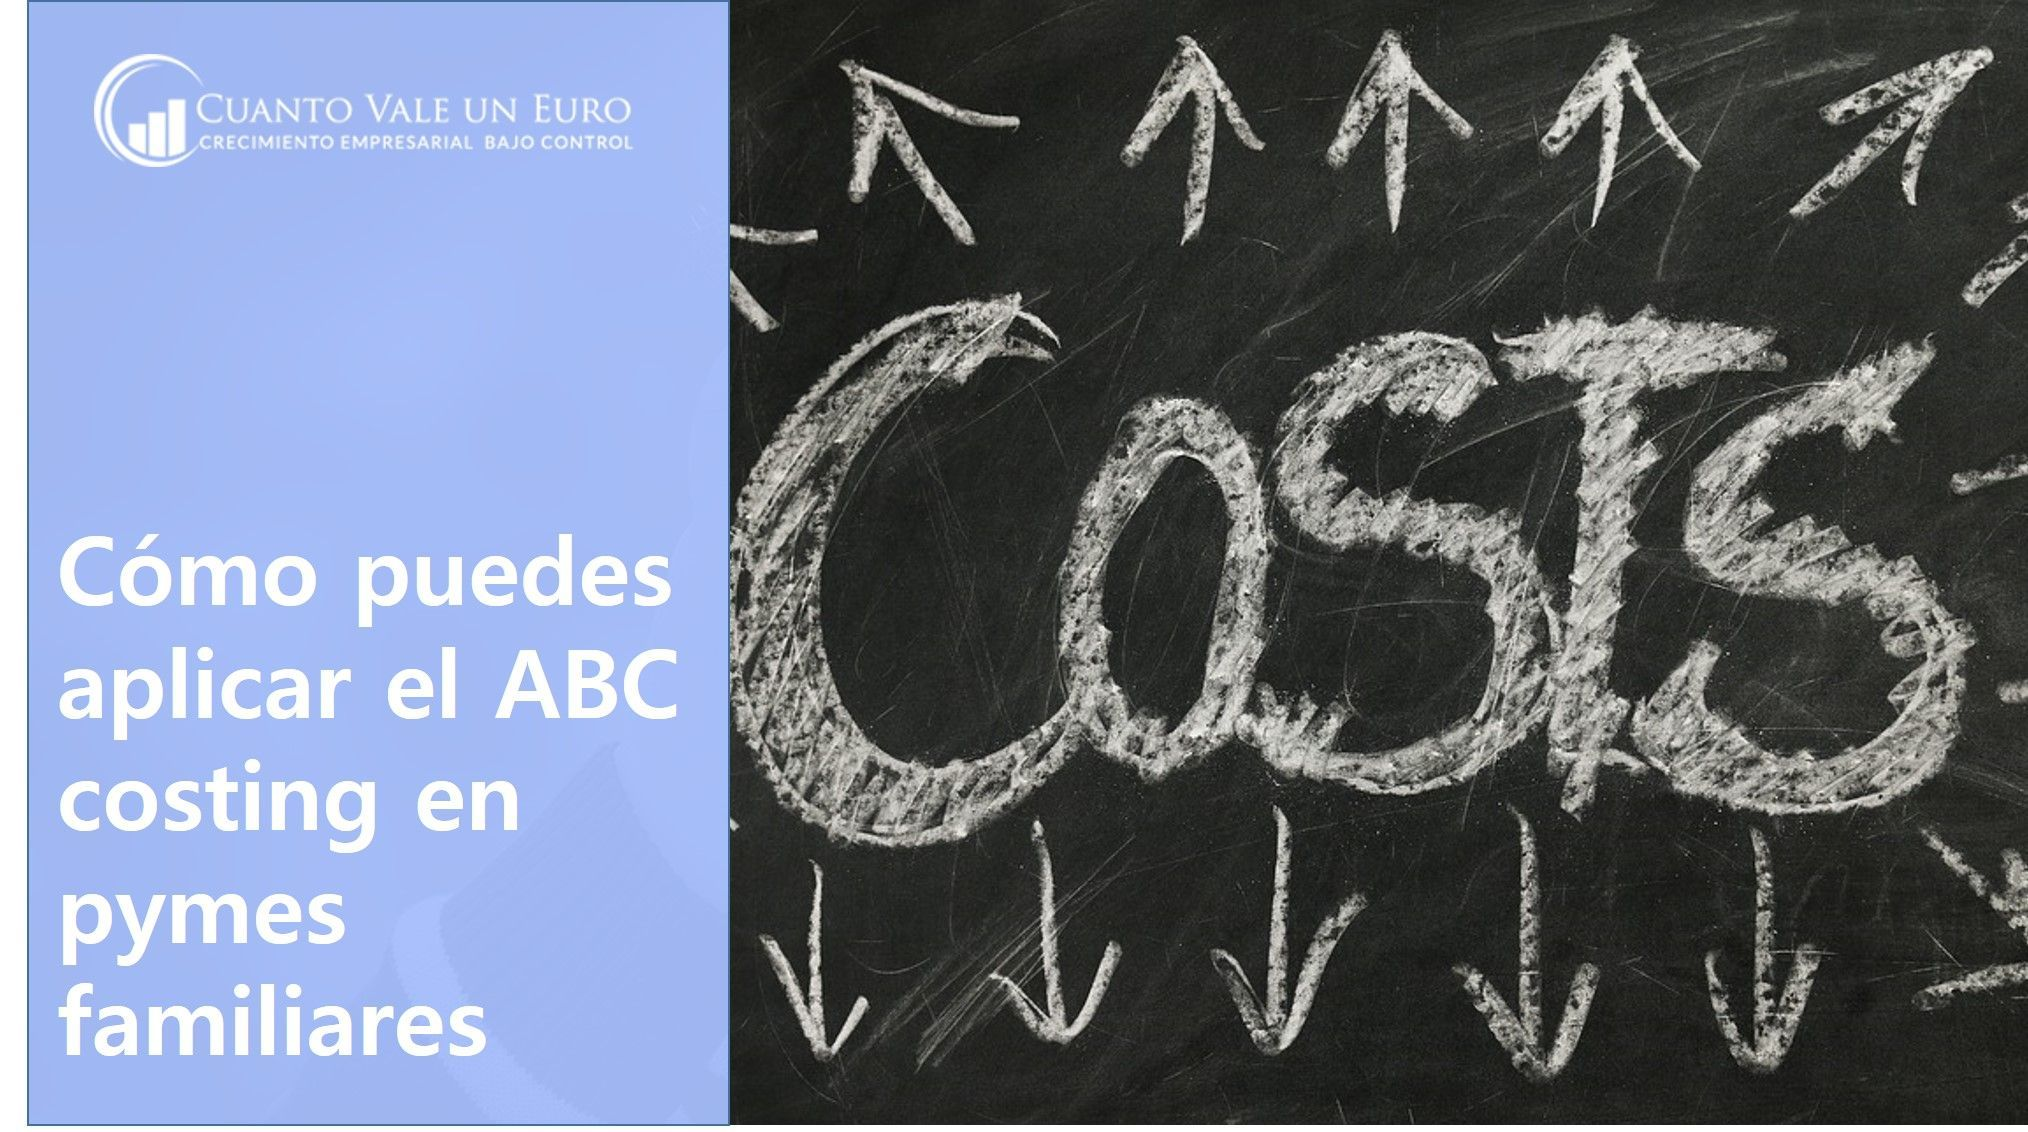 ABC costing en pymes familiares